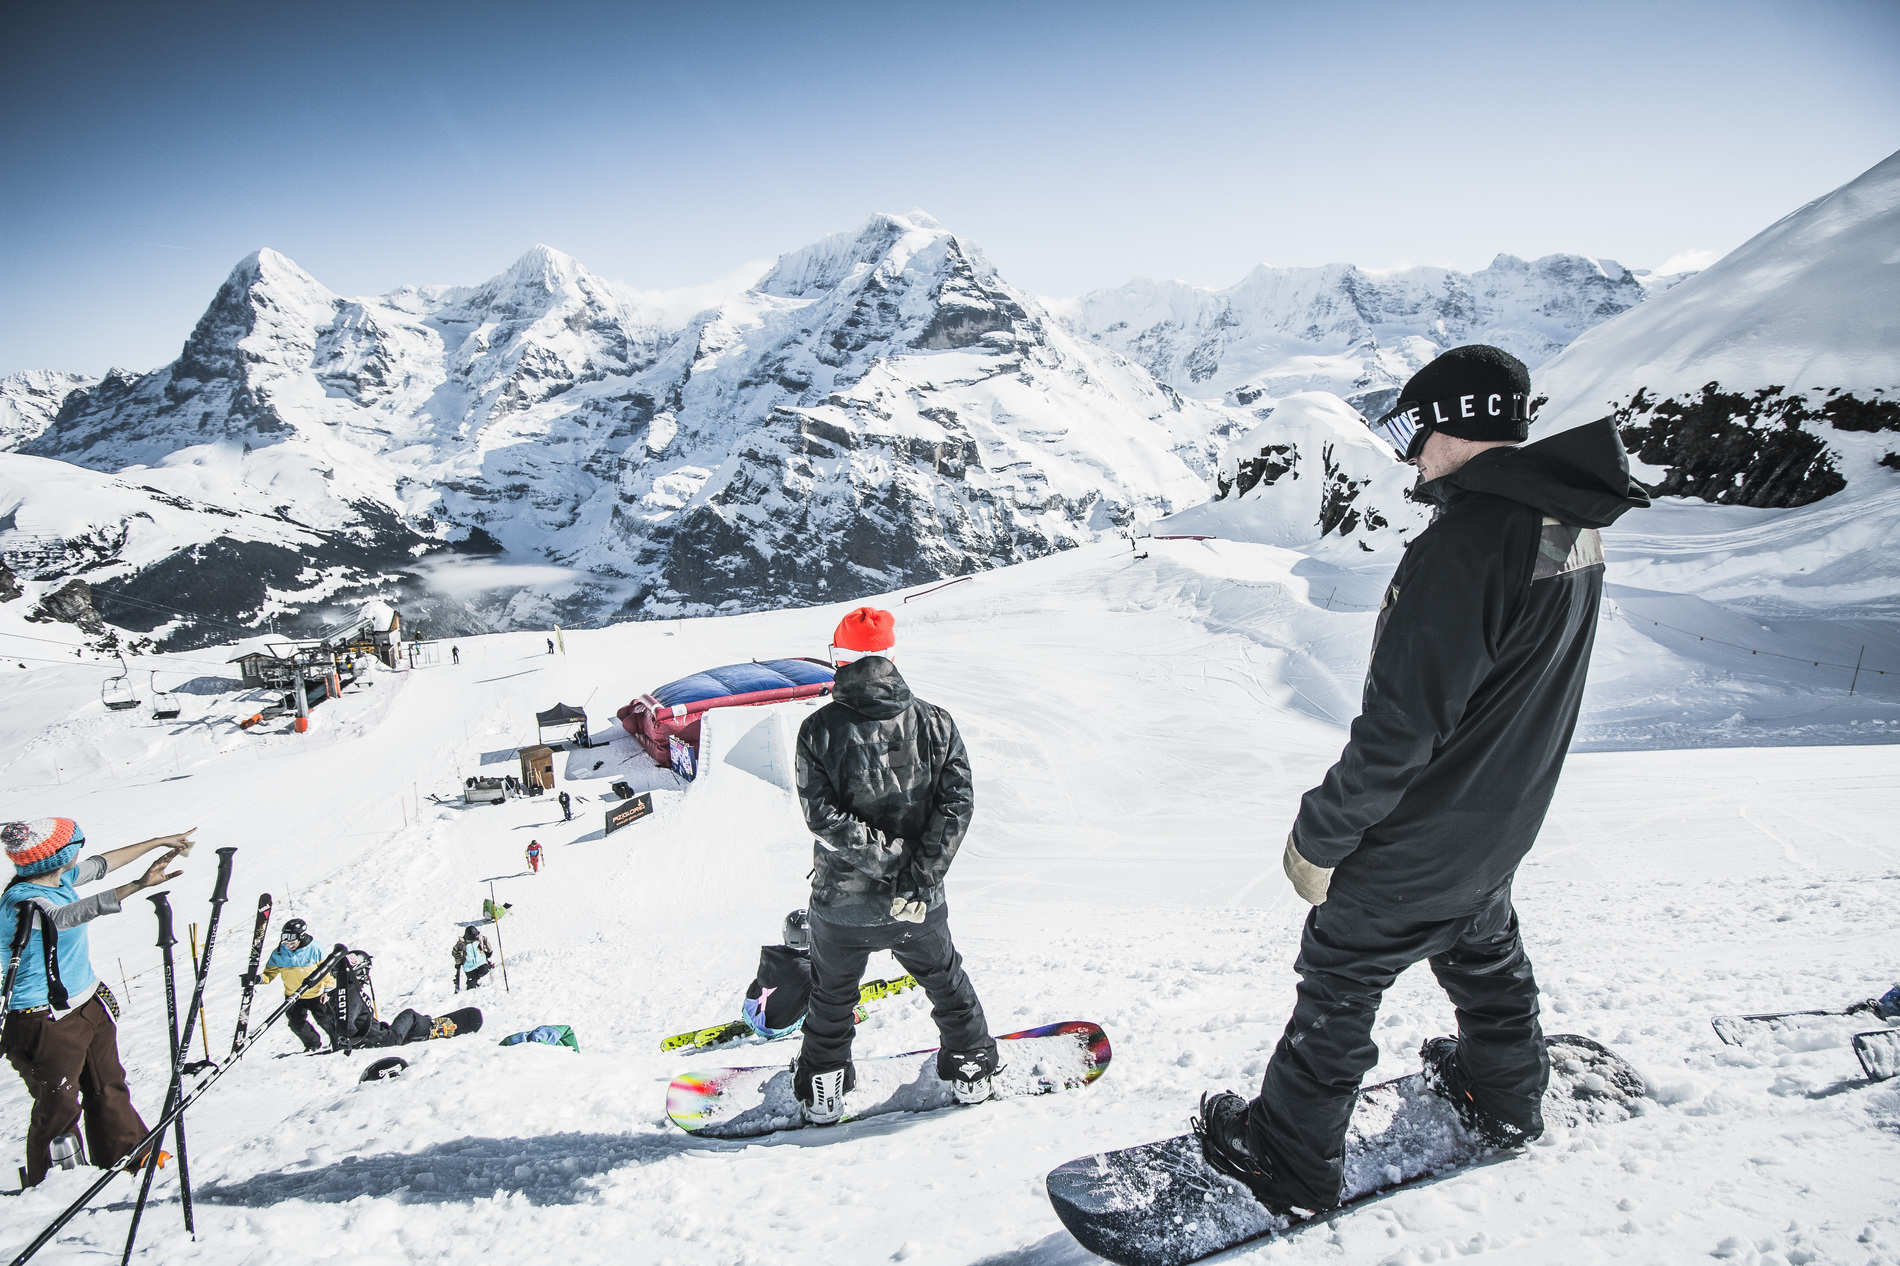 Park Life Schilthorn – Swiss shred terrain at it's best